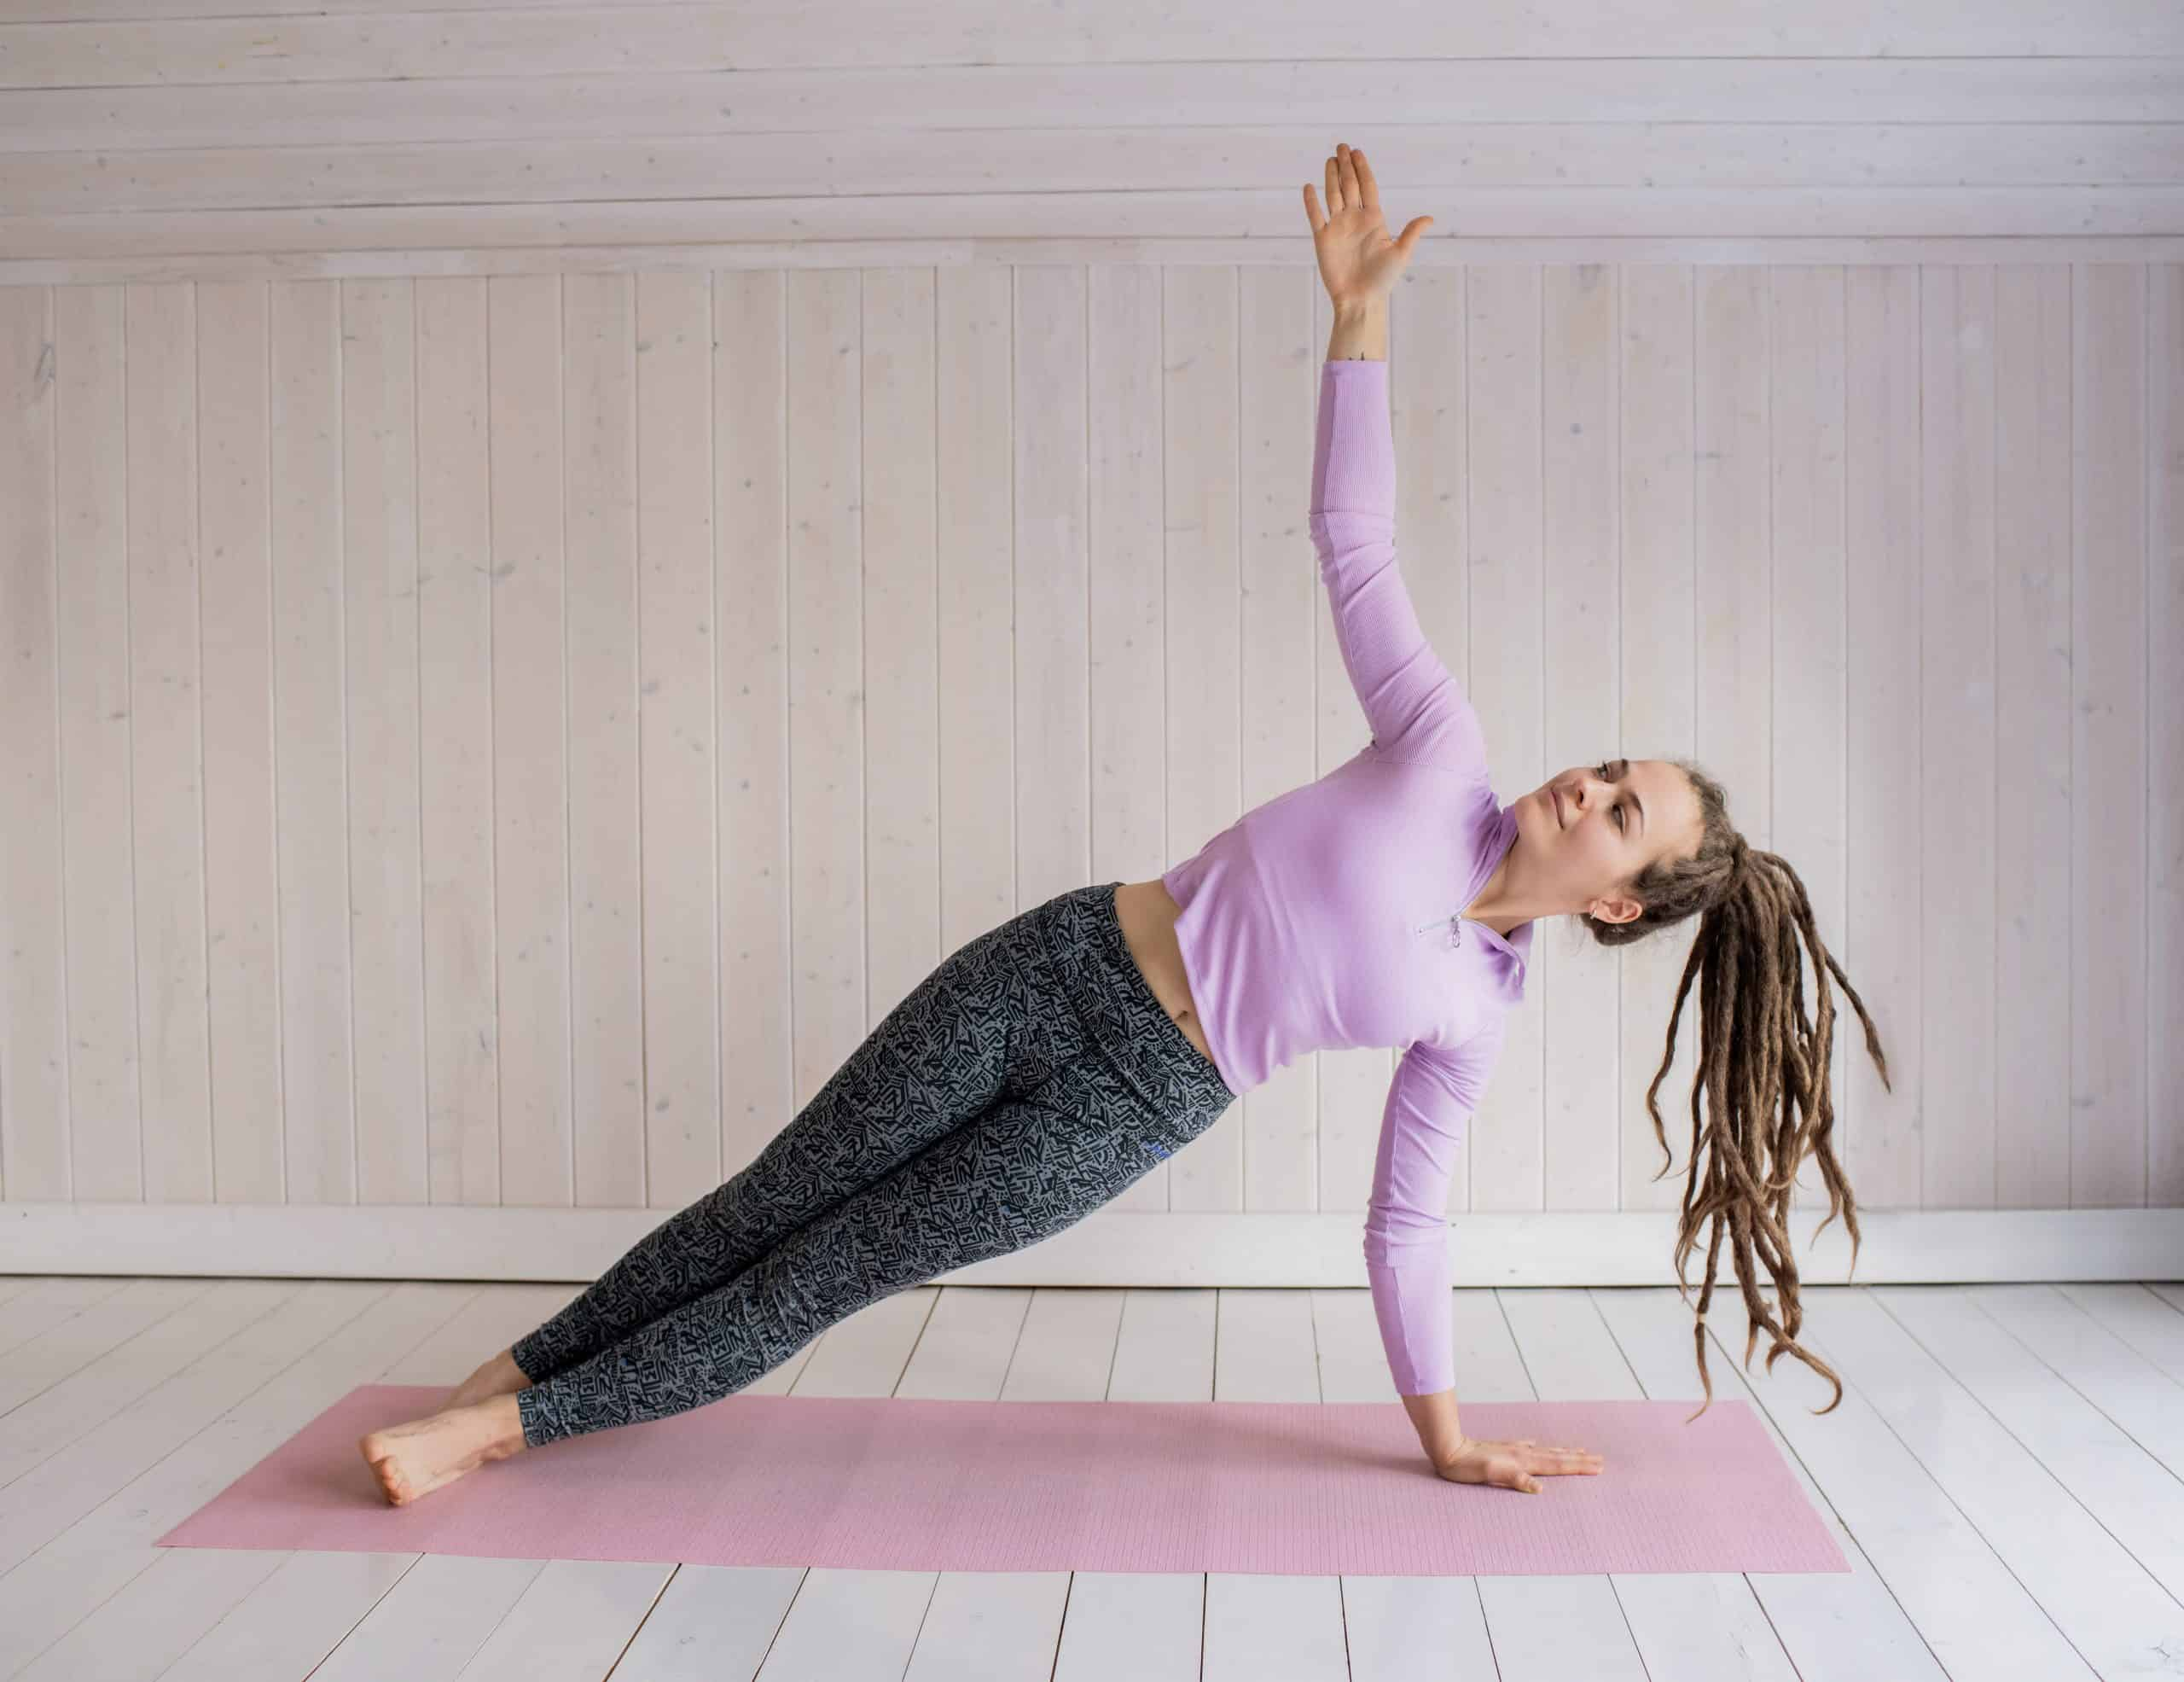 Canva - Woman In Pink Long Sleeve Shirt And Gray Leggings Doing Yoga